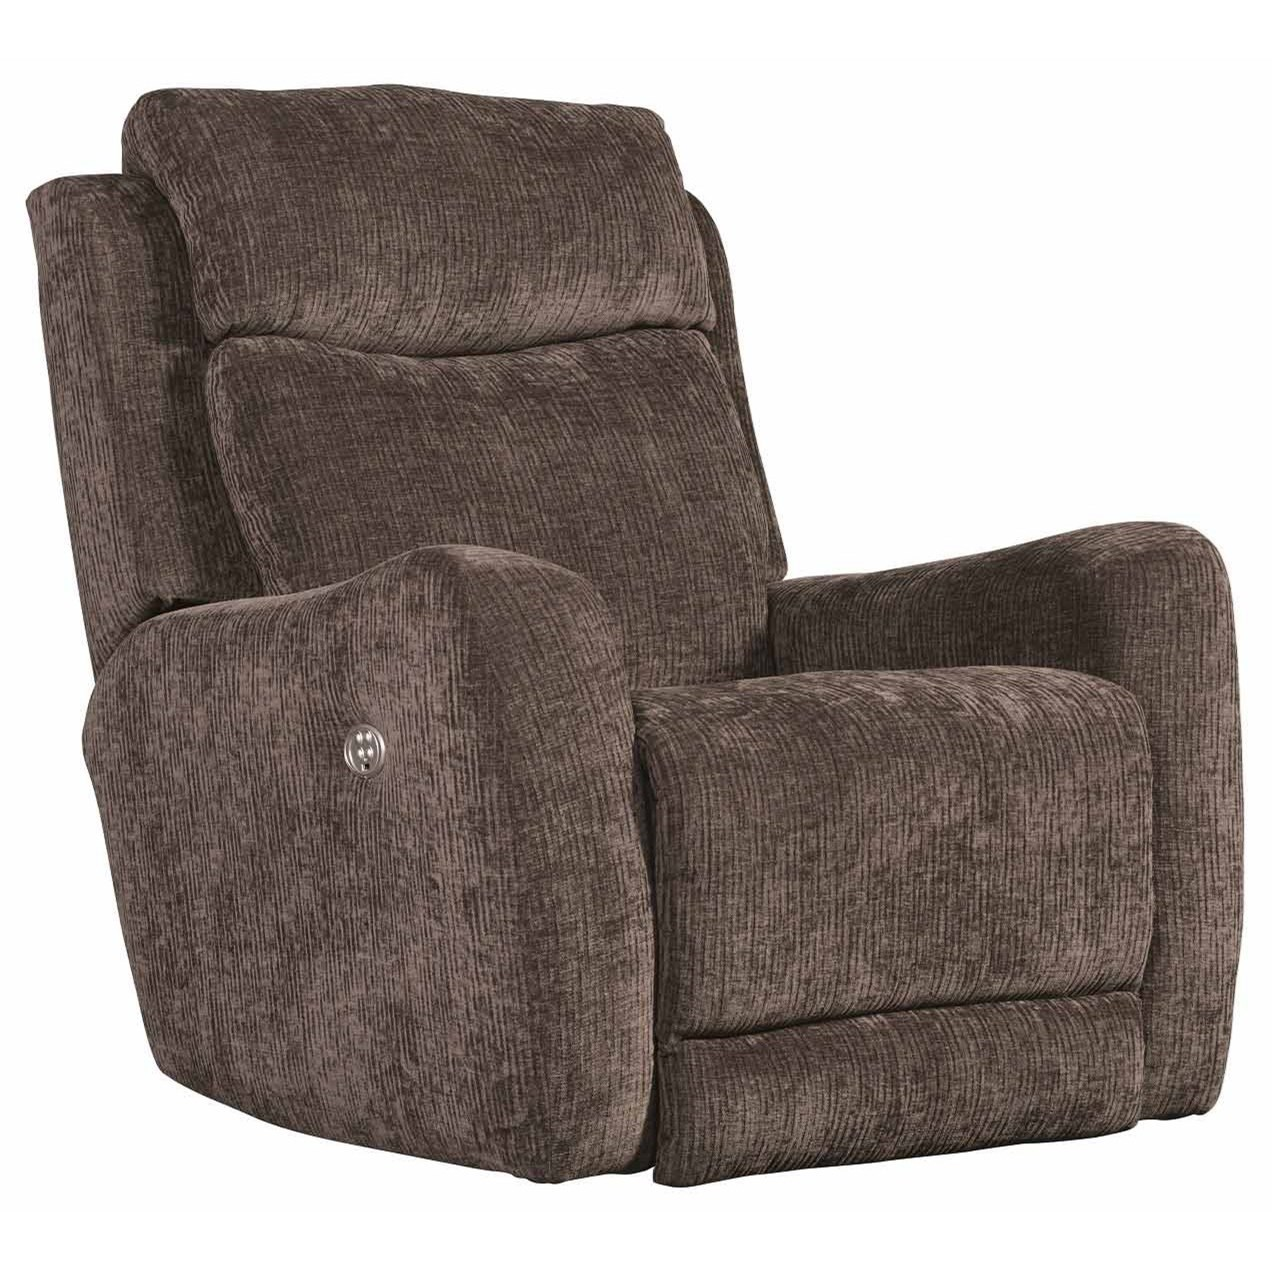 View Point Power Wall Hugger Recliner with SoCozi by Southern Motion at Suburban Furniture